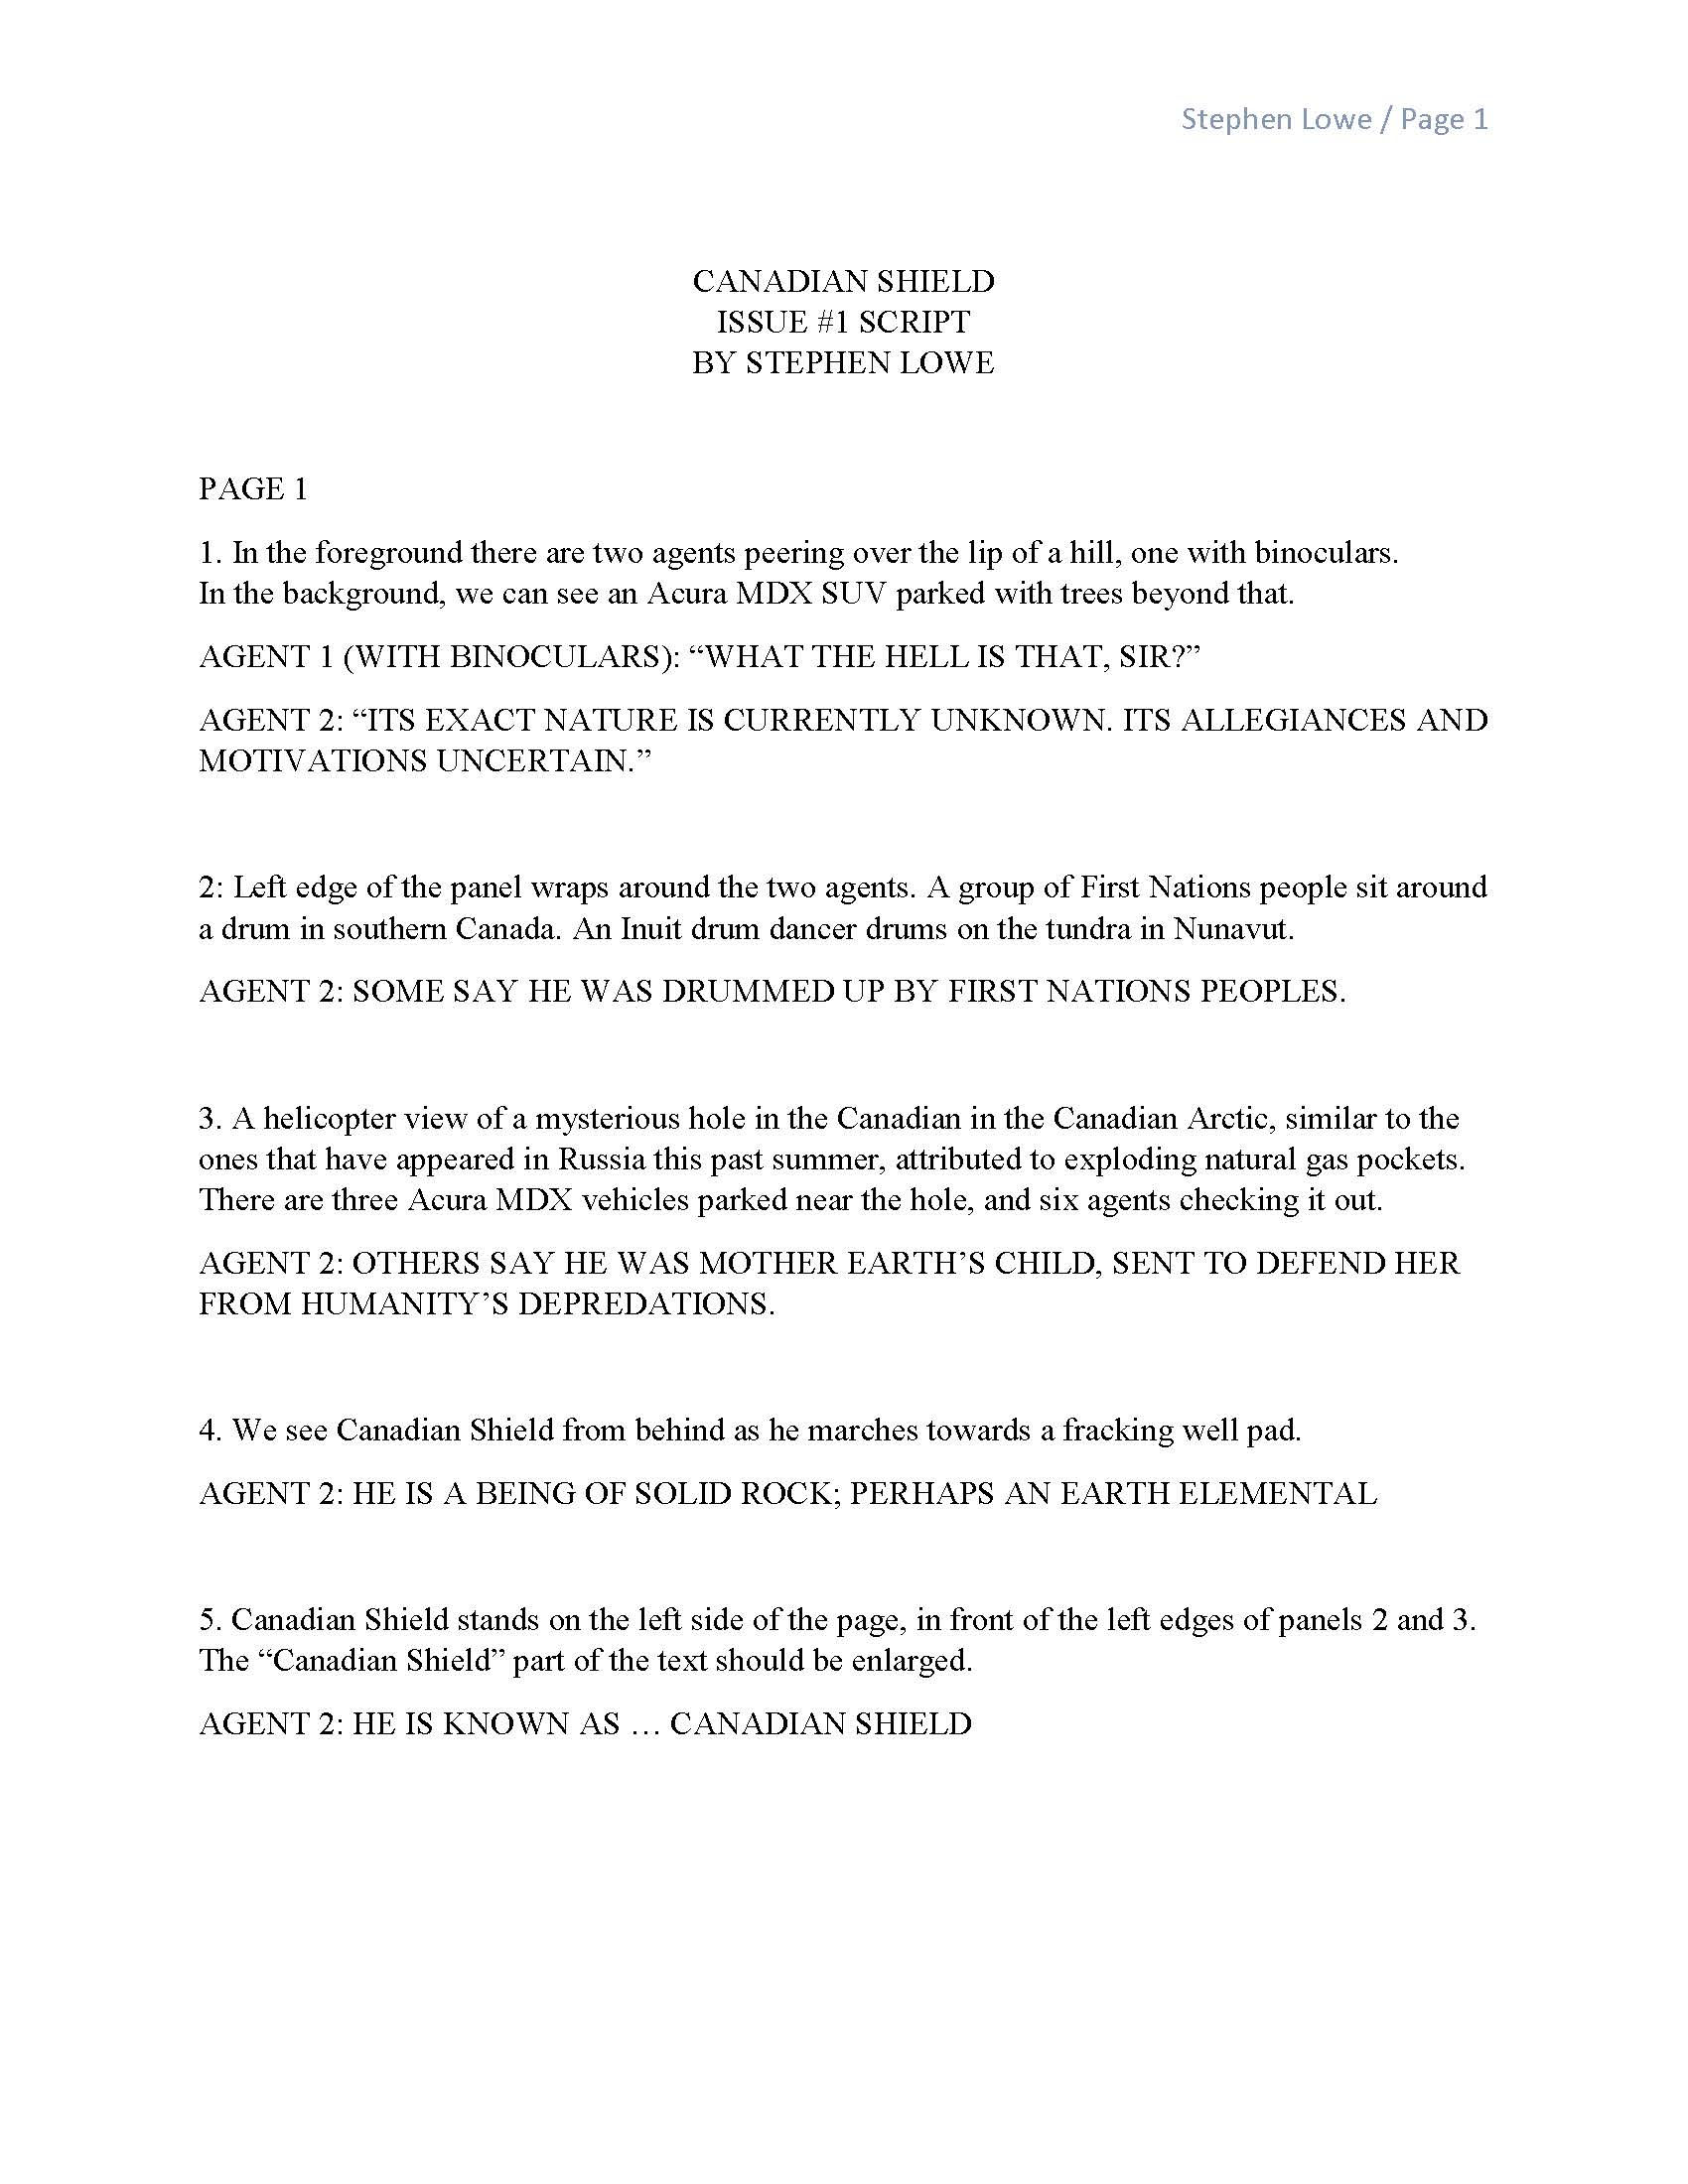 Revised Script for Canadian Shield